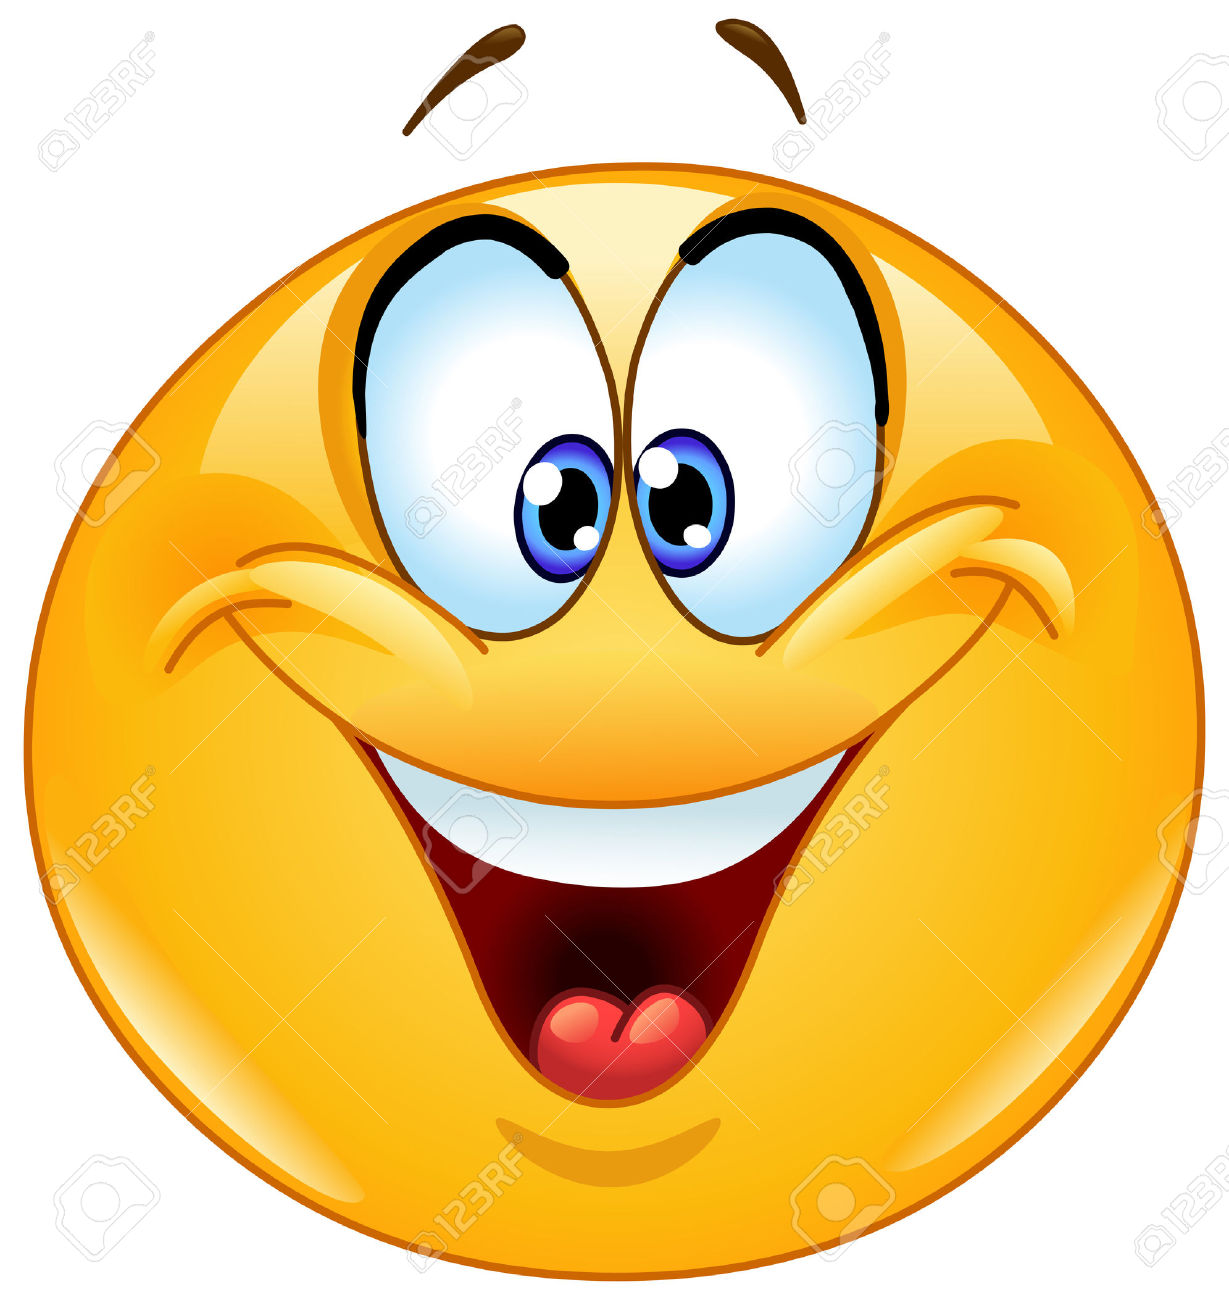 Happy Emoticon With Crossed Eyes Squinting. Royalty Free Cliparts.